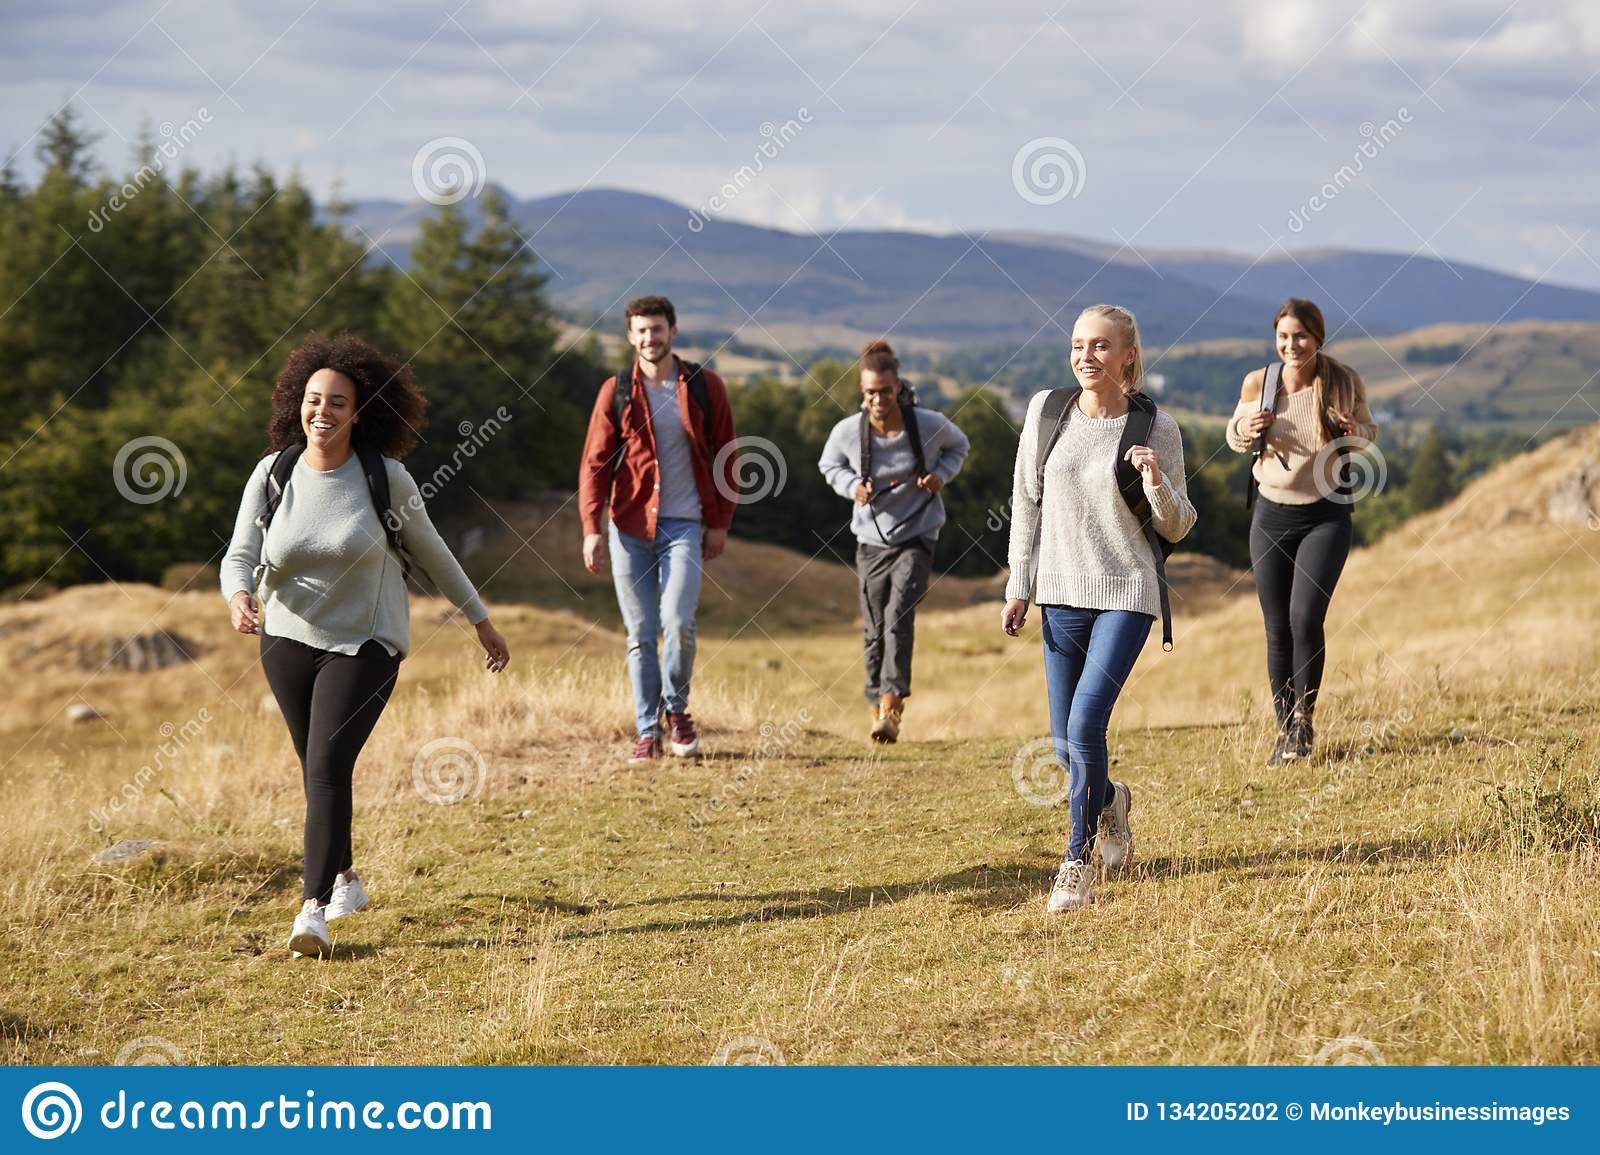 Multi ethnic group of five happy young adult friends walking on a rural path during a mountain hike, close up